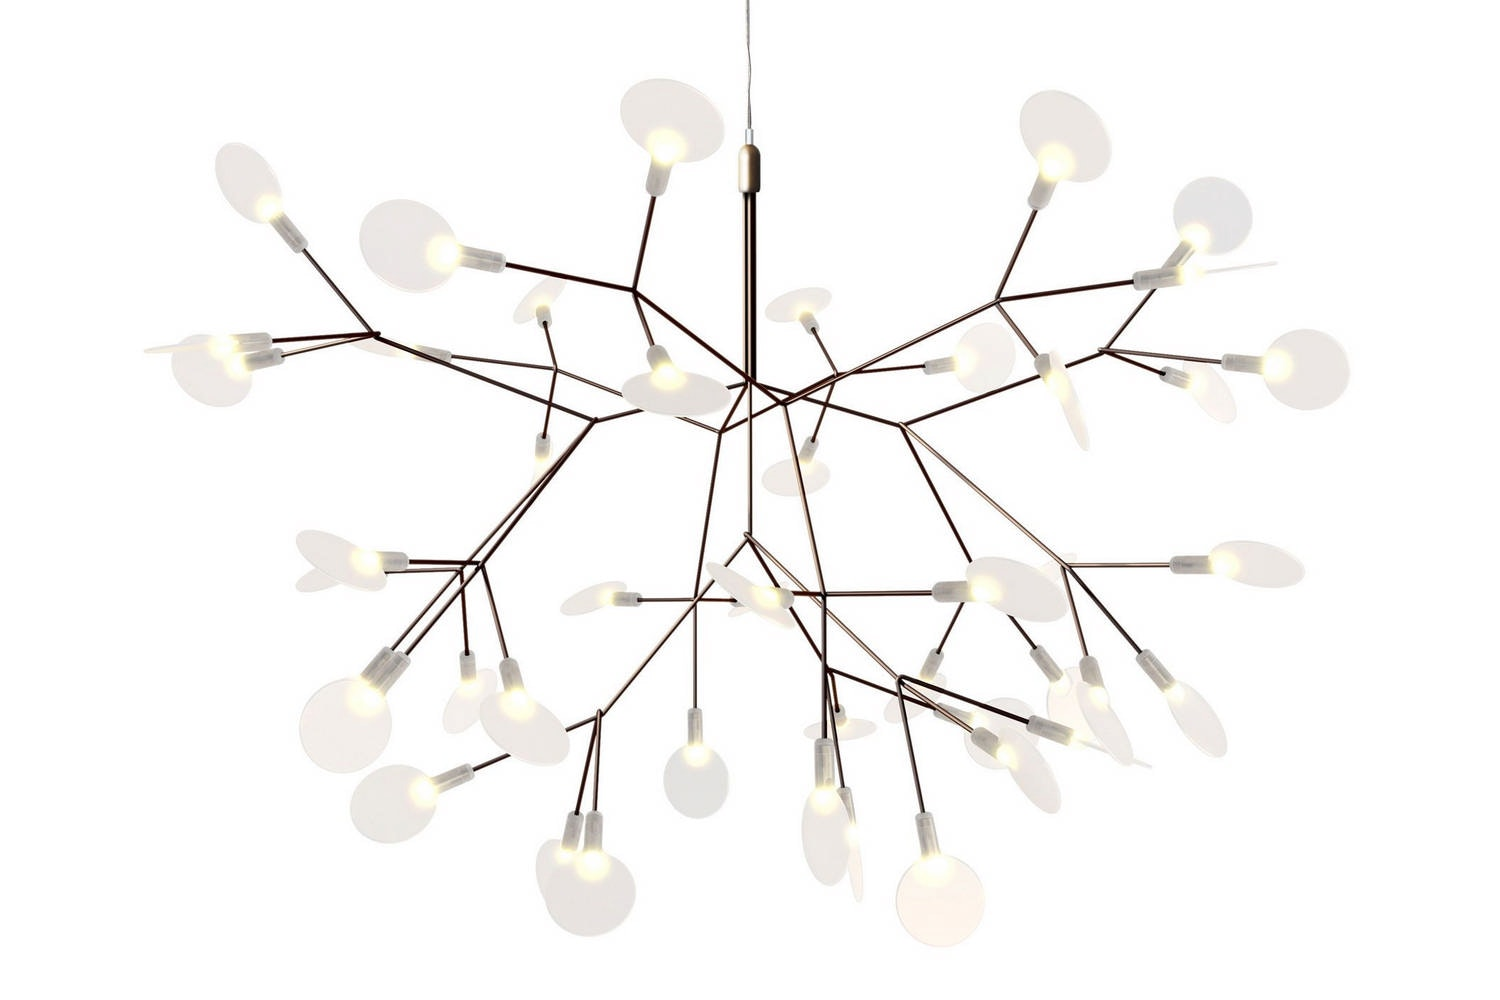 Heracleum II Small Suspension Lamp by Bertjan Pot for Moooi